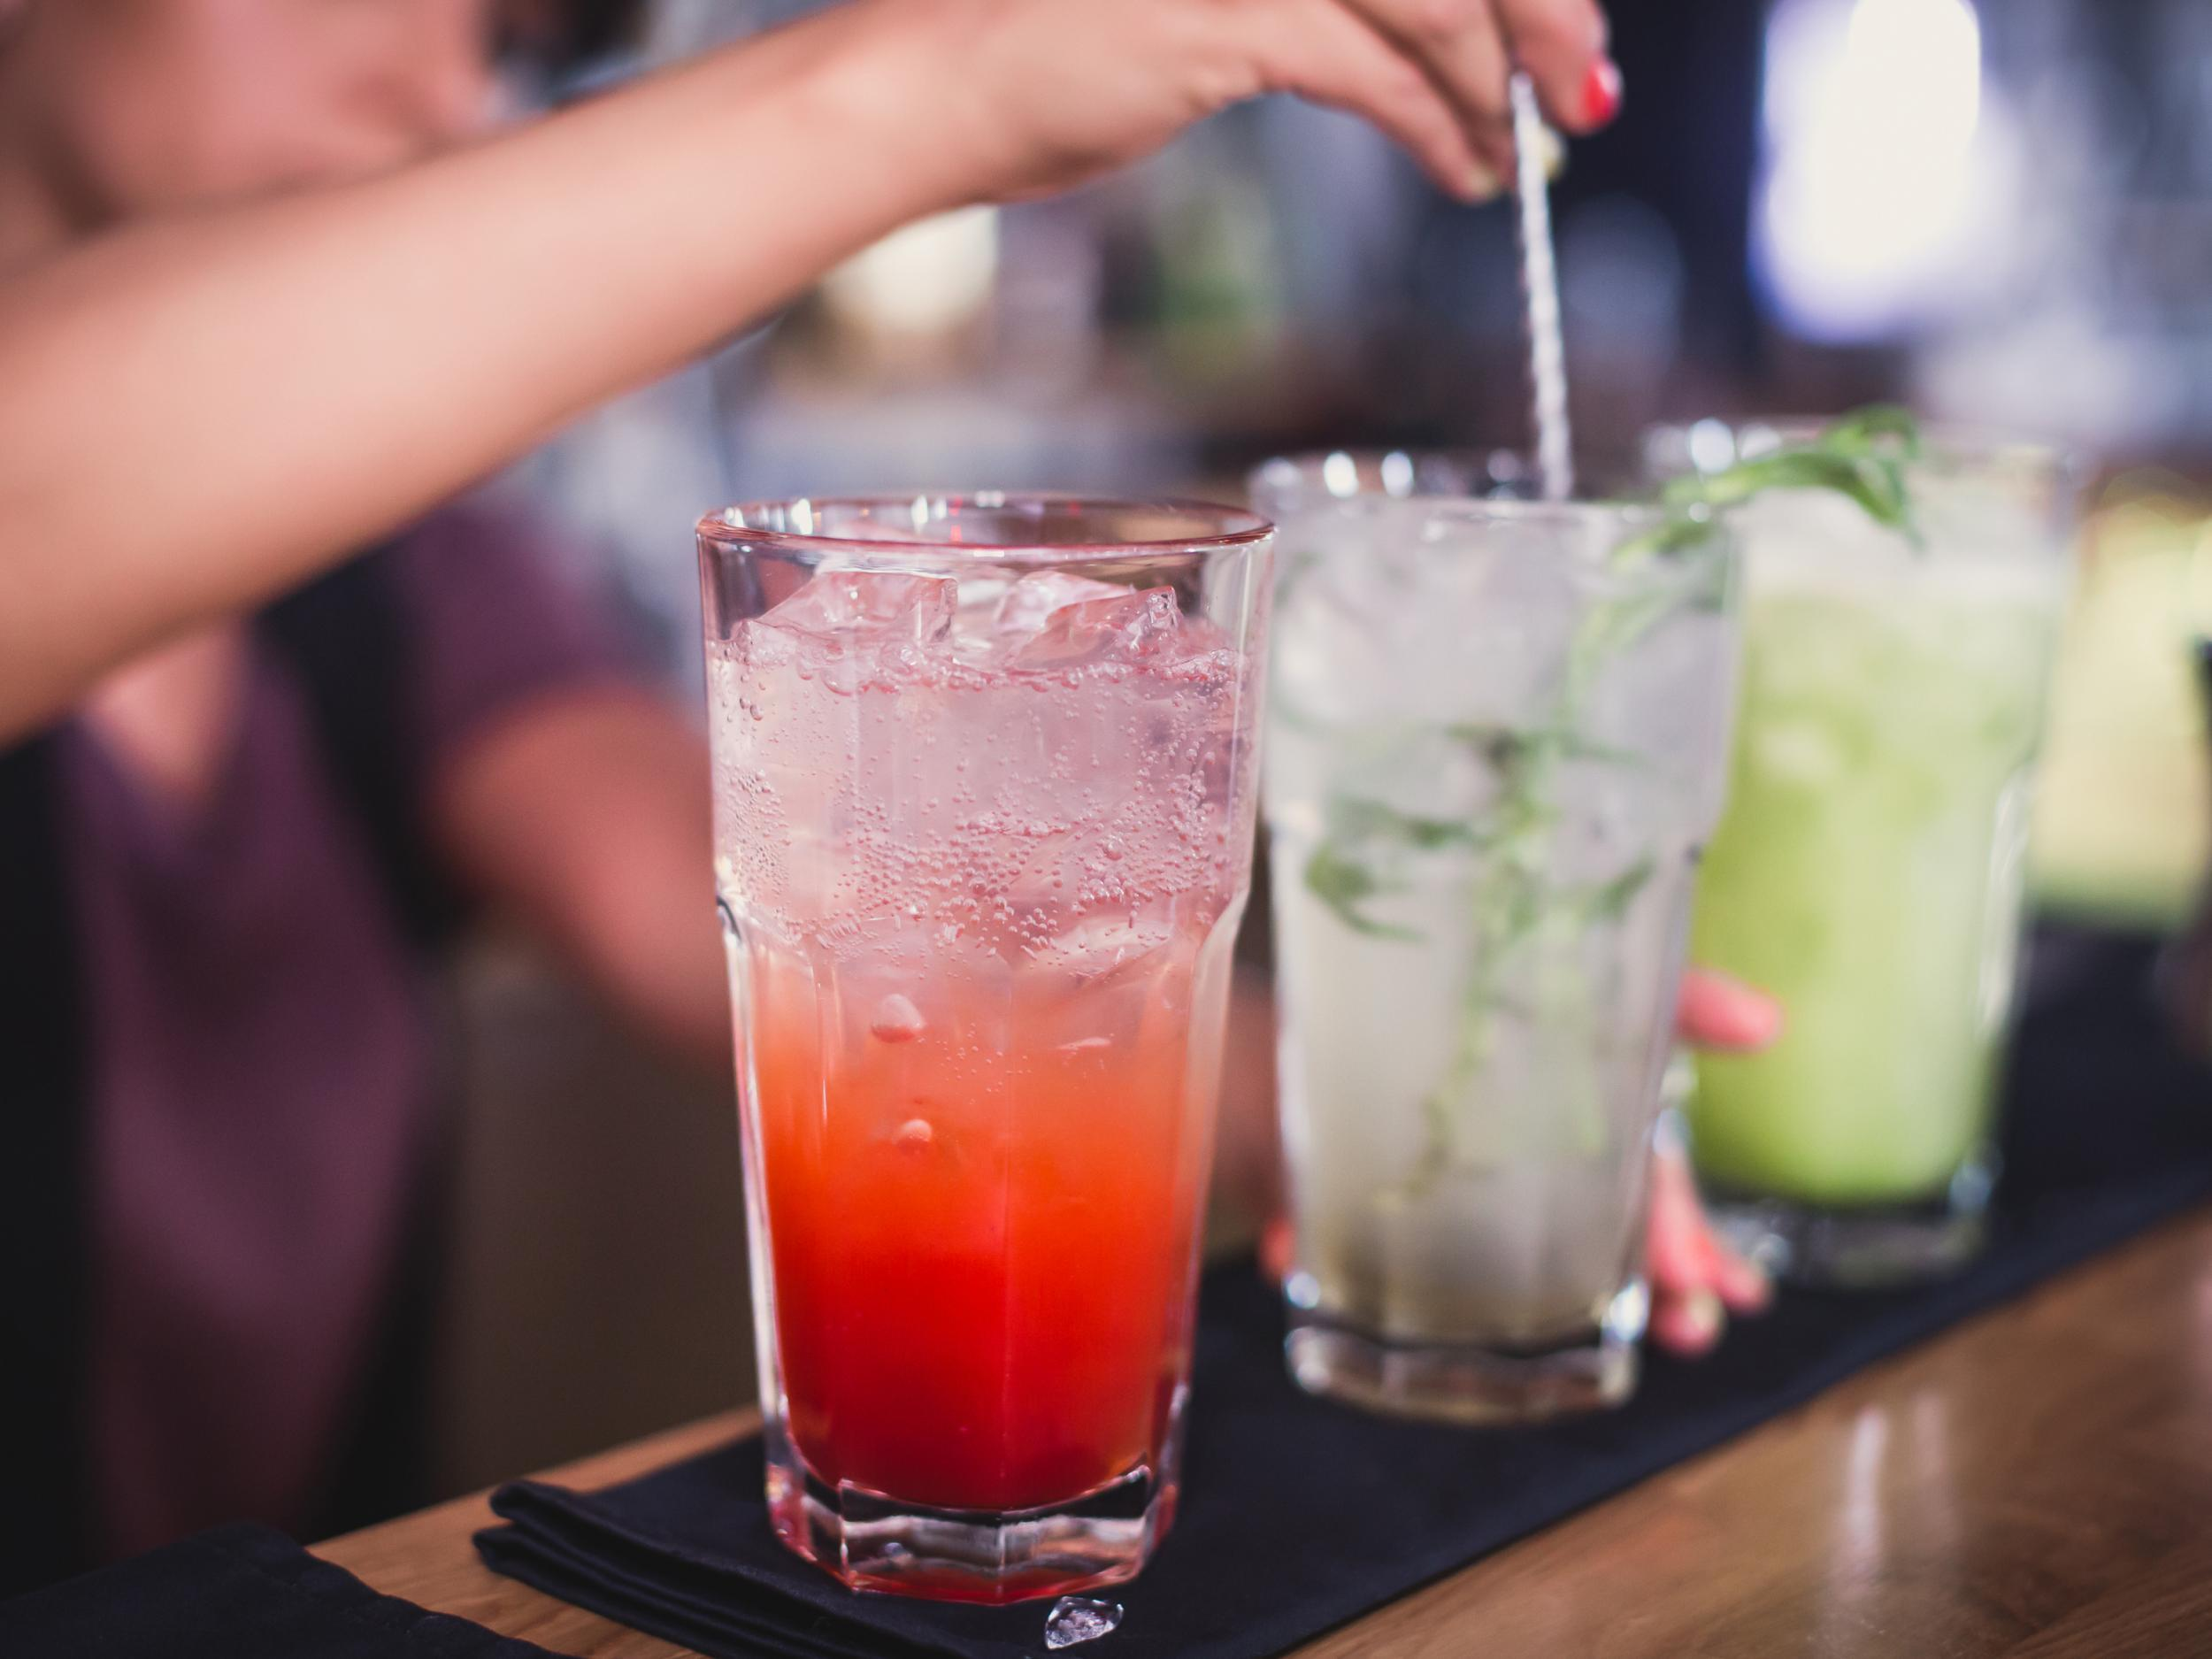 Hangover-free alcohol could replace all regular alcohol by 2050 photo